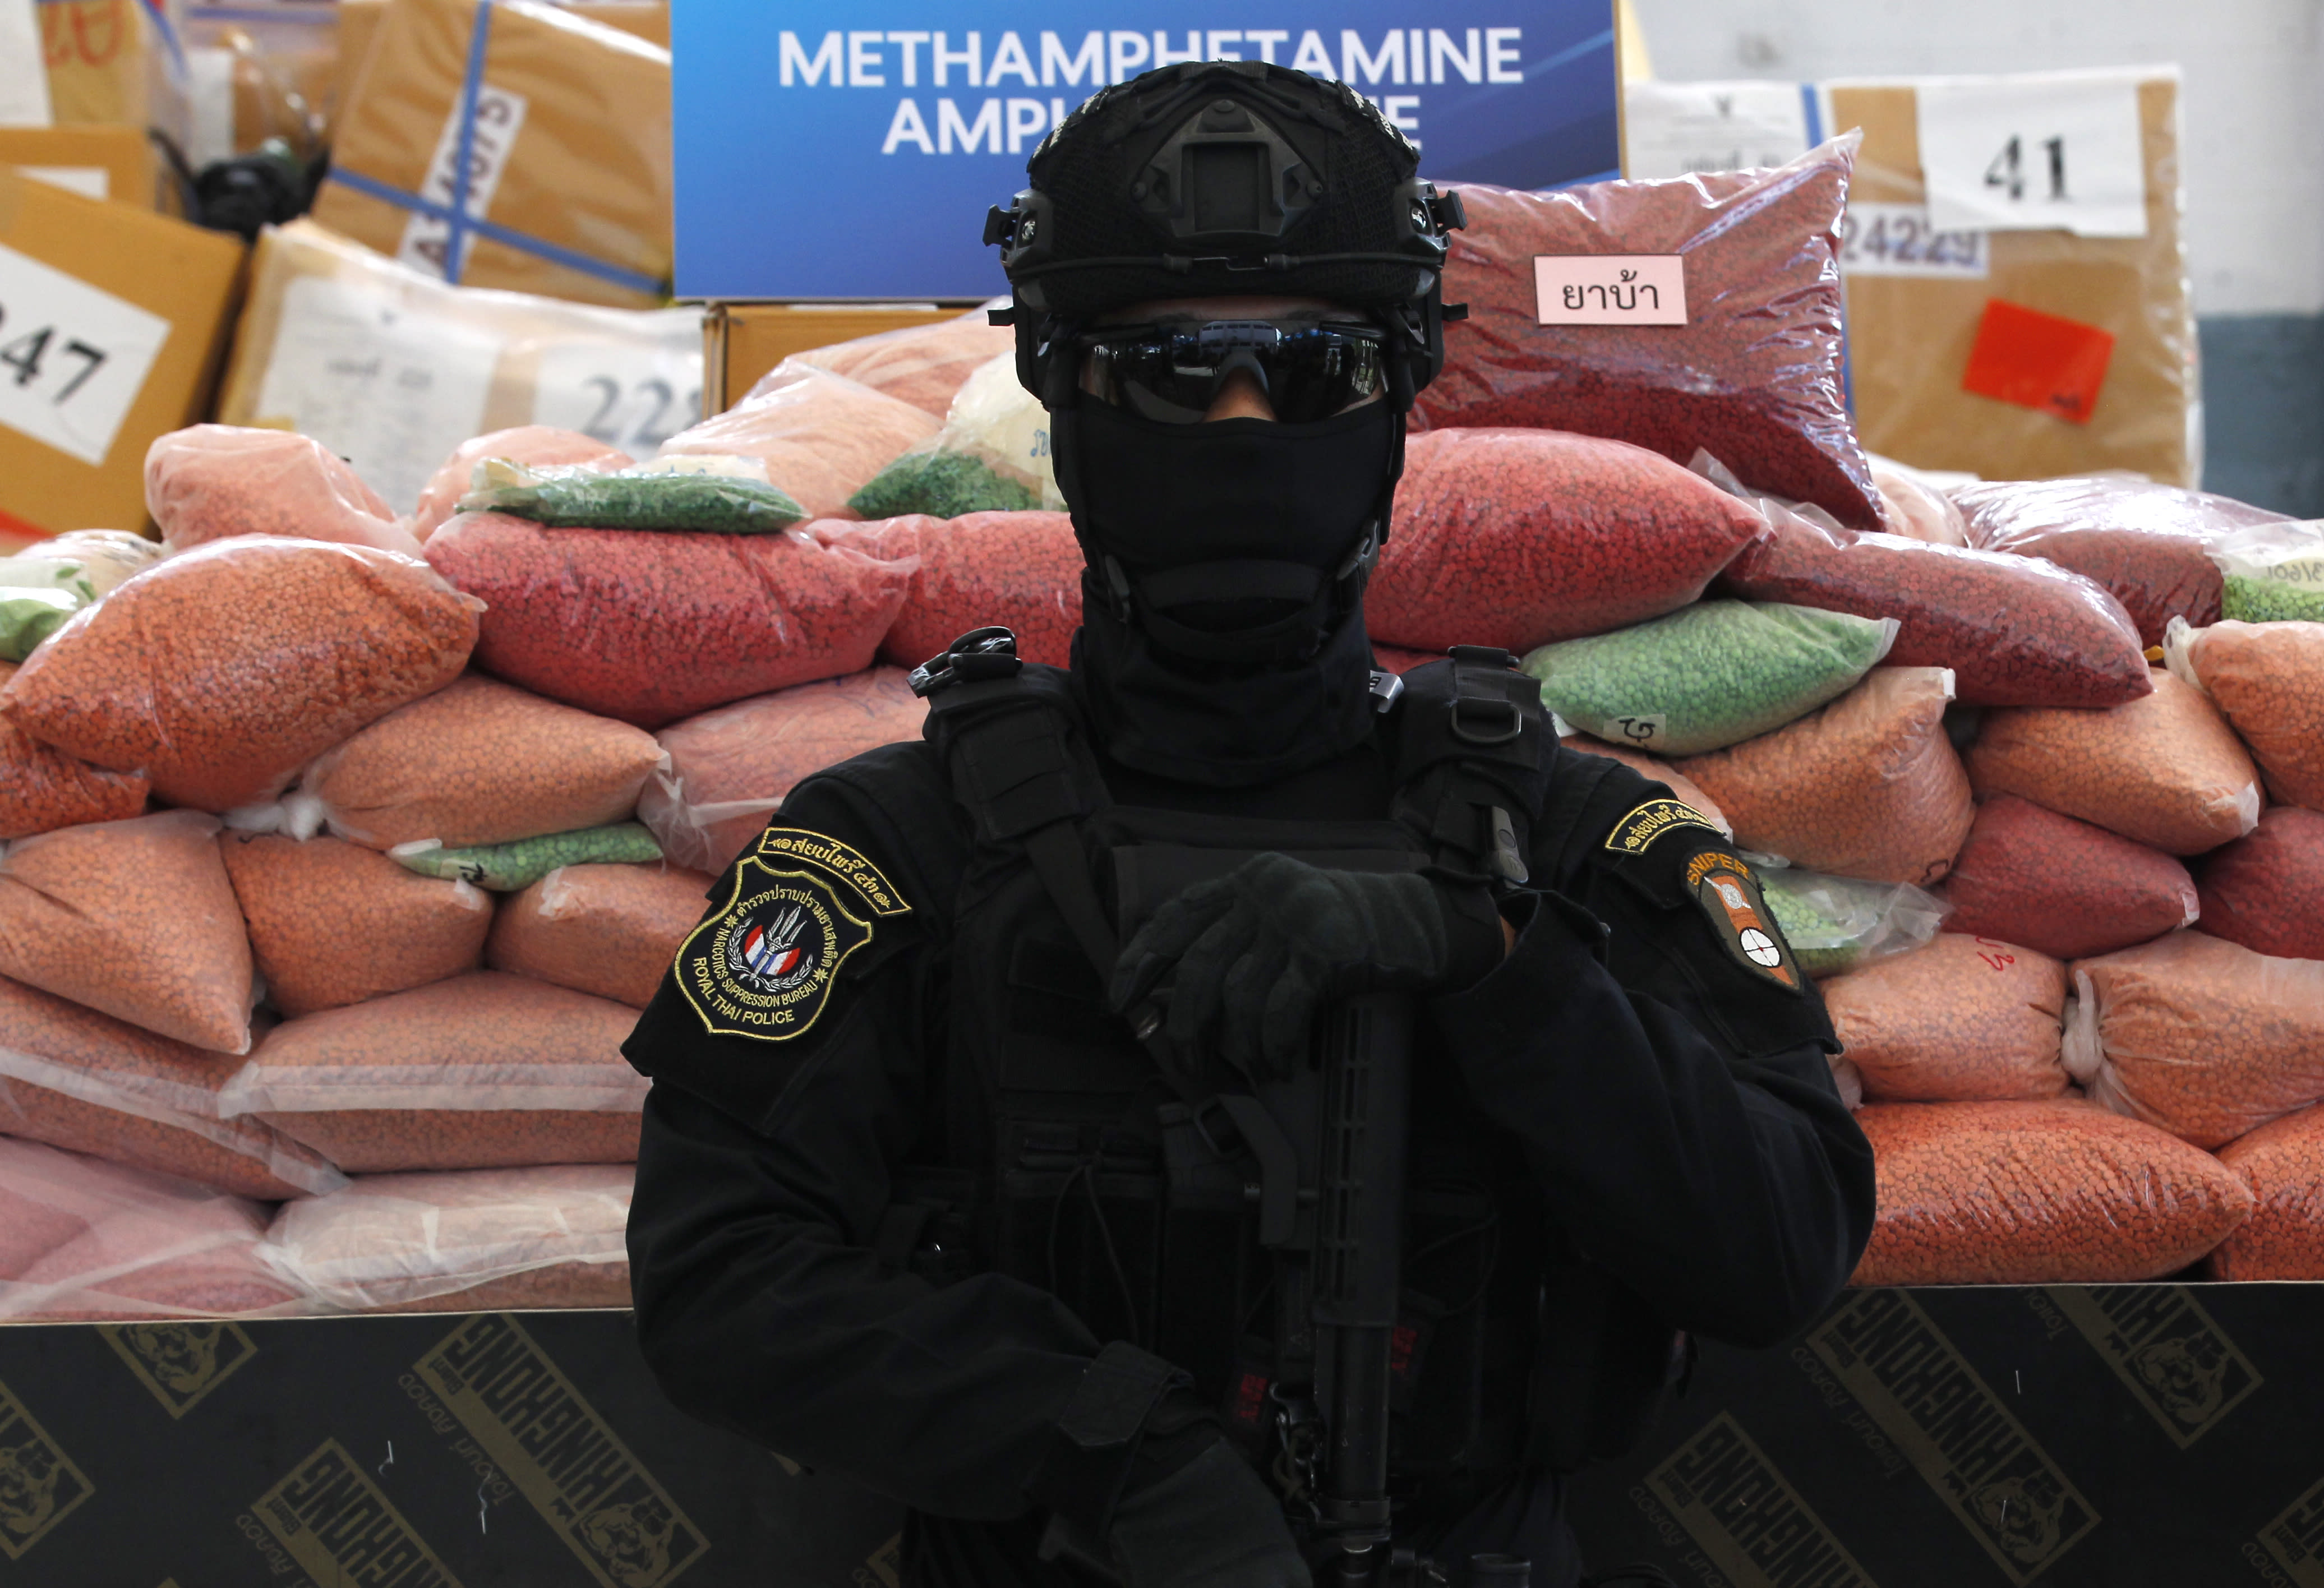 'Out of control': Meth is making a big comeback in the U.S.